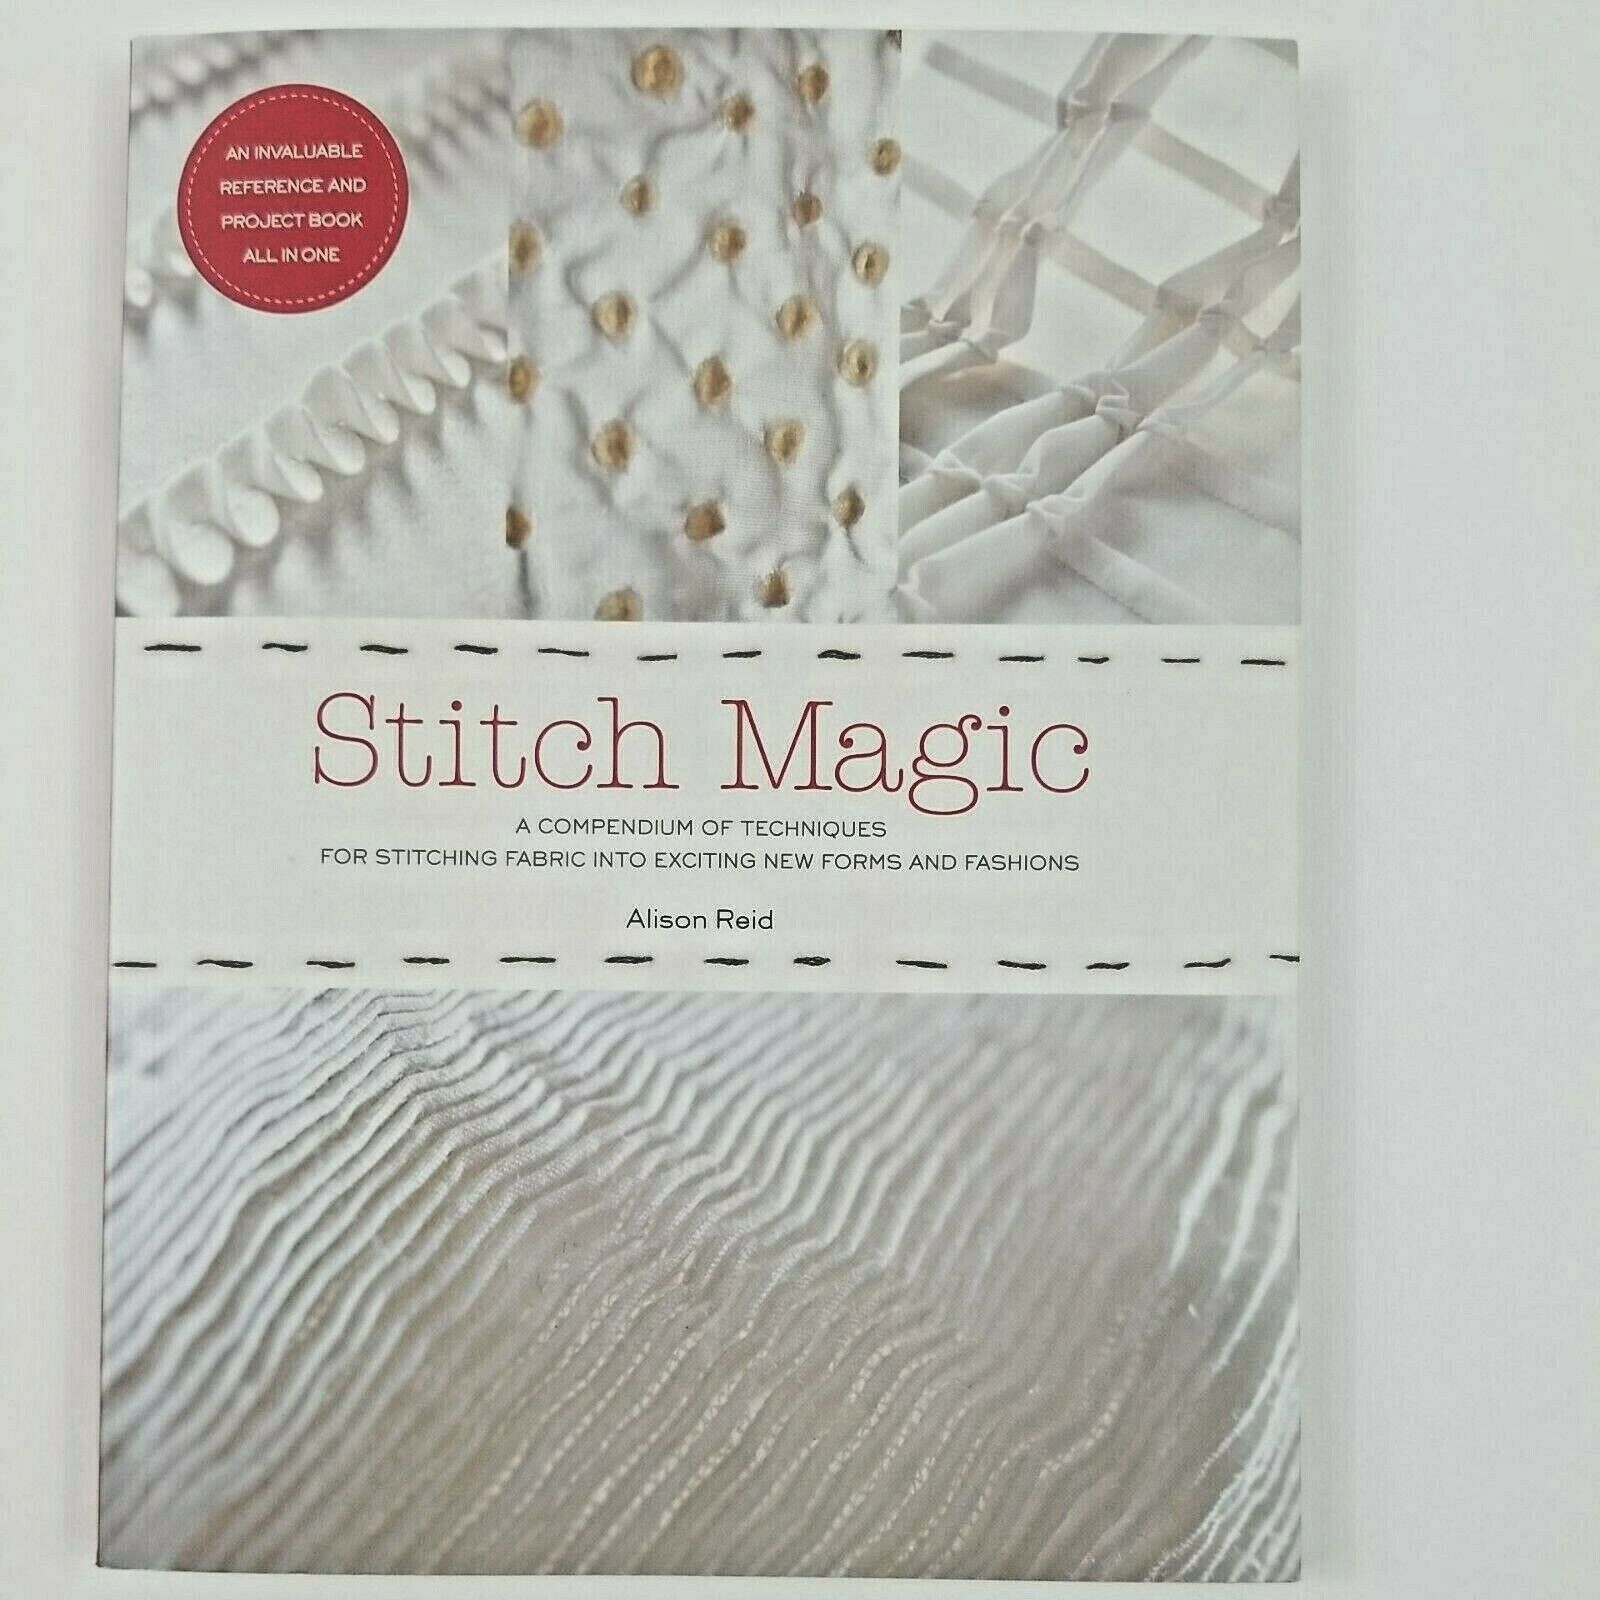 A Compendium of Techniques for Stitching Fabric Into Exciting New Forms and Fashions Stitch Magic